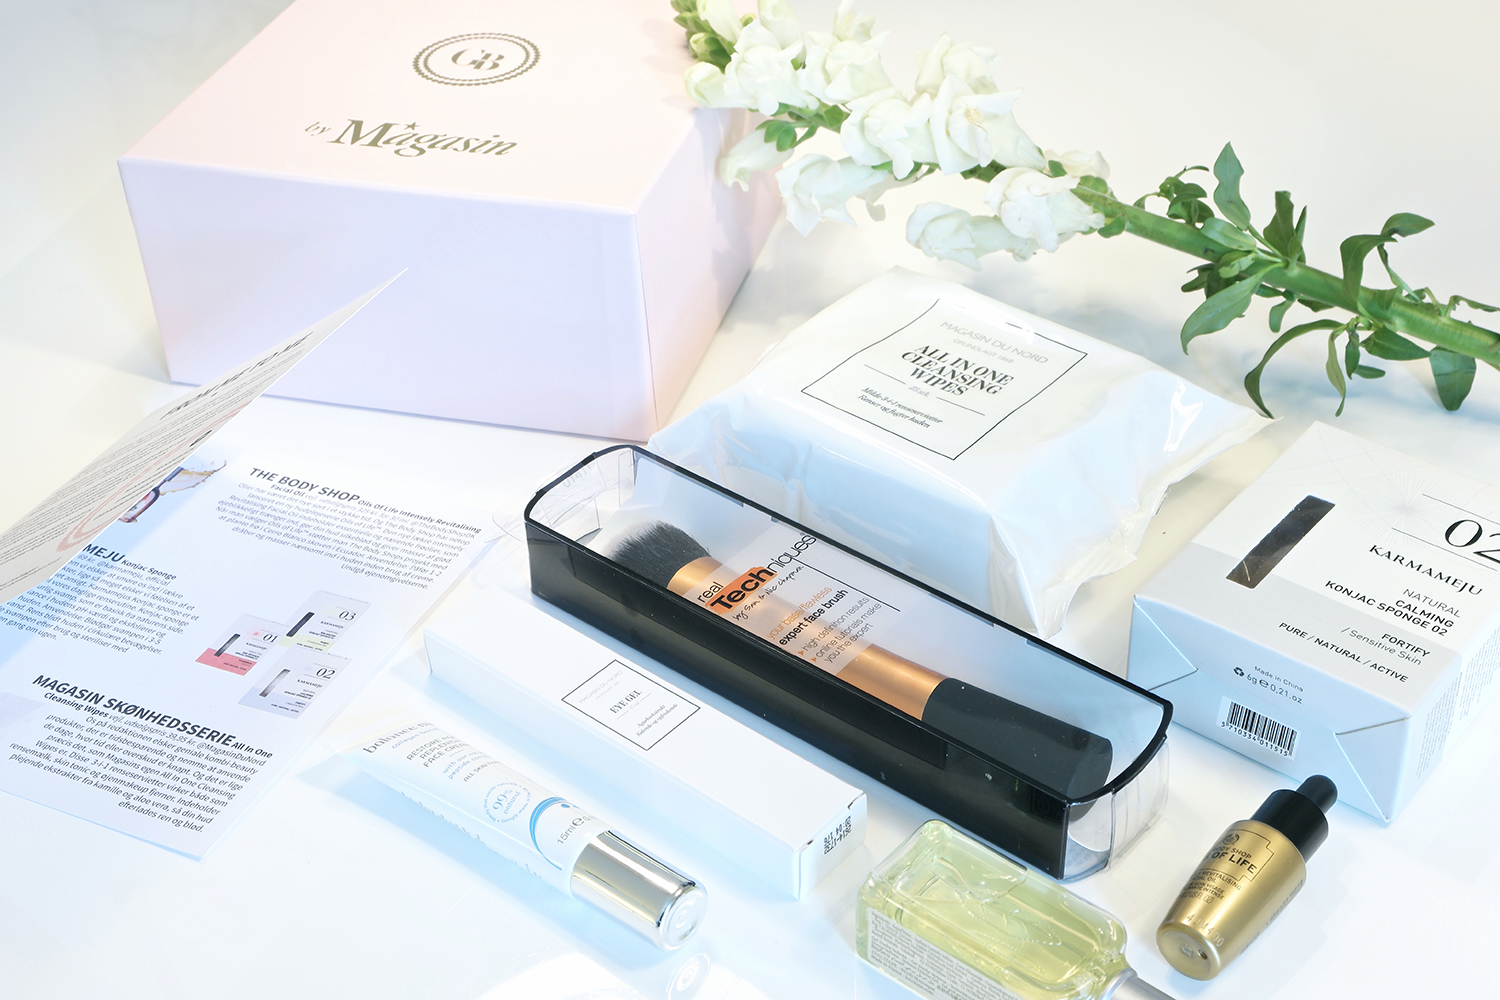 Goodiebox by Magasin